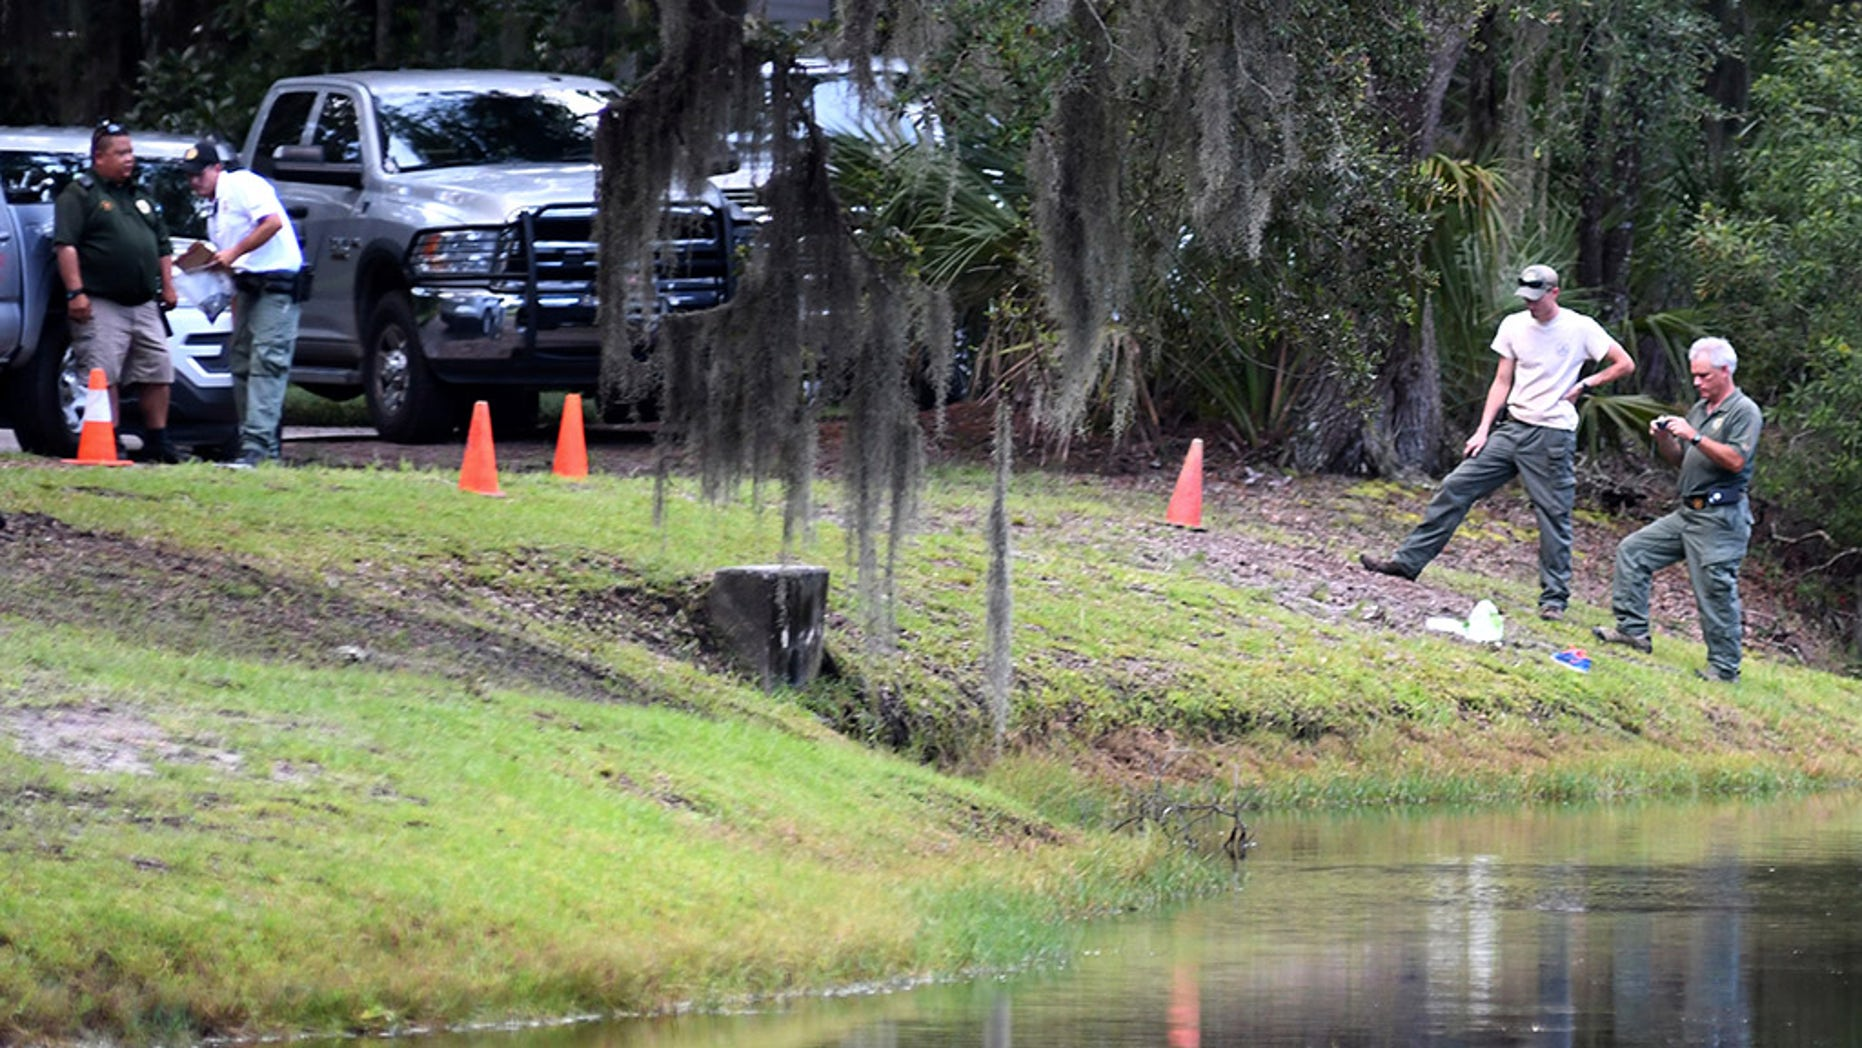 Law enforcement with S.C. Department of Natural Resources take pictures of the site where authorities say Cassandra Cline was dragged into a lagoon by an alligator and killed while trying to save her dog on Monday, Aug. 20, 2018, on Hilton Head Island, S.C. Cline was walking the dog along a residential area of Sea Pines Resort when she was attacked, state and local officials said. (Drew Martin/The Island Packet via AP)